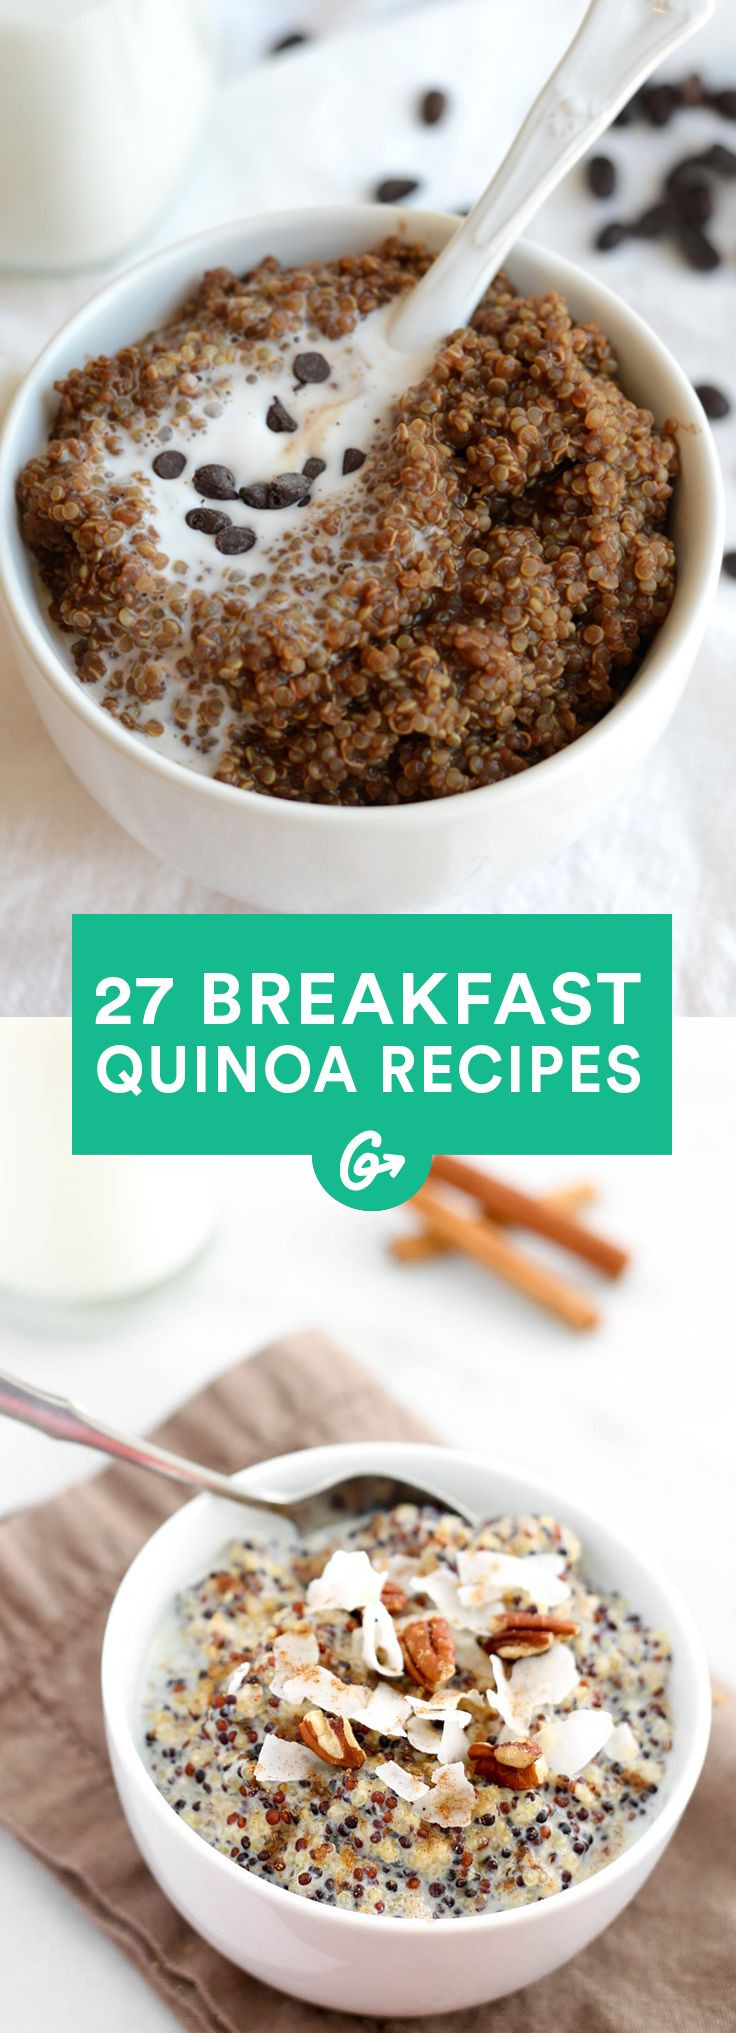 Breakfast Quinoa Recipes  27 Breakfast Quinoa Recipes That'll Make You For All